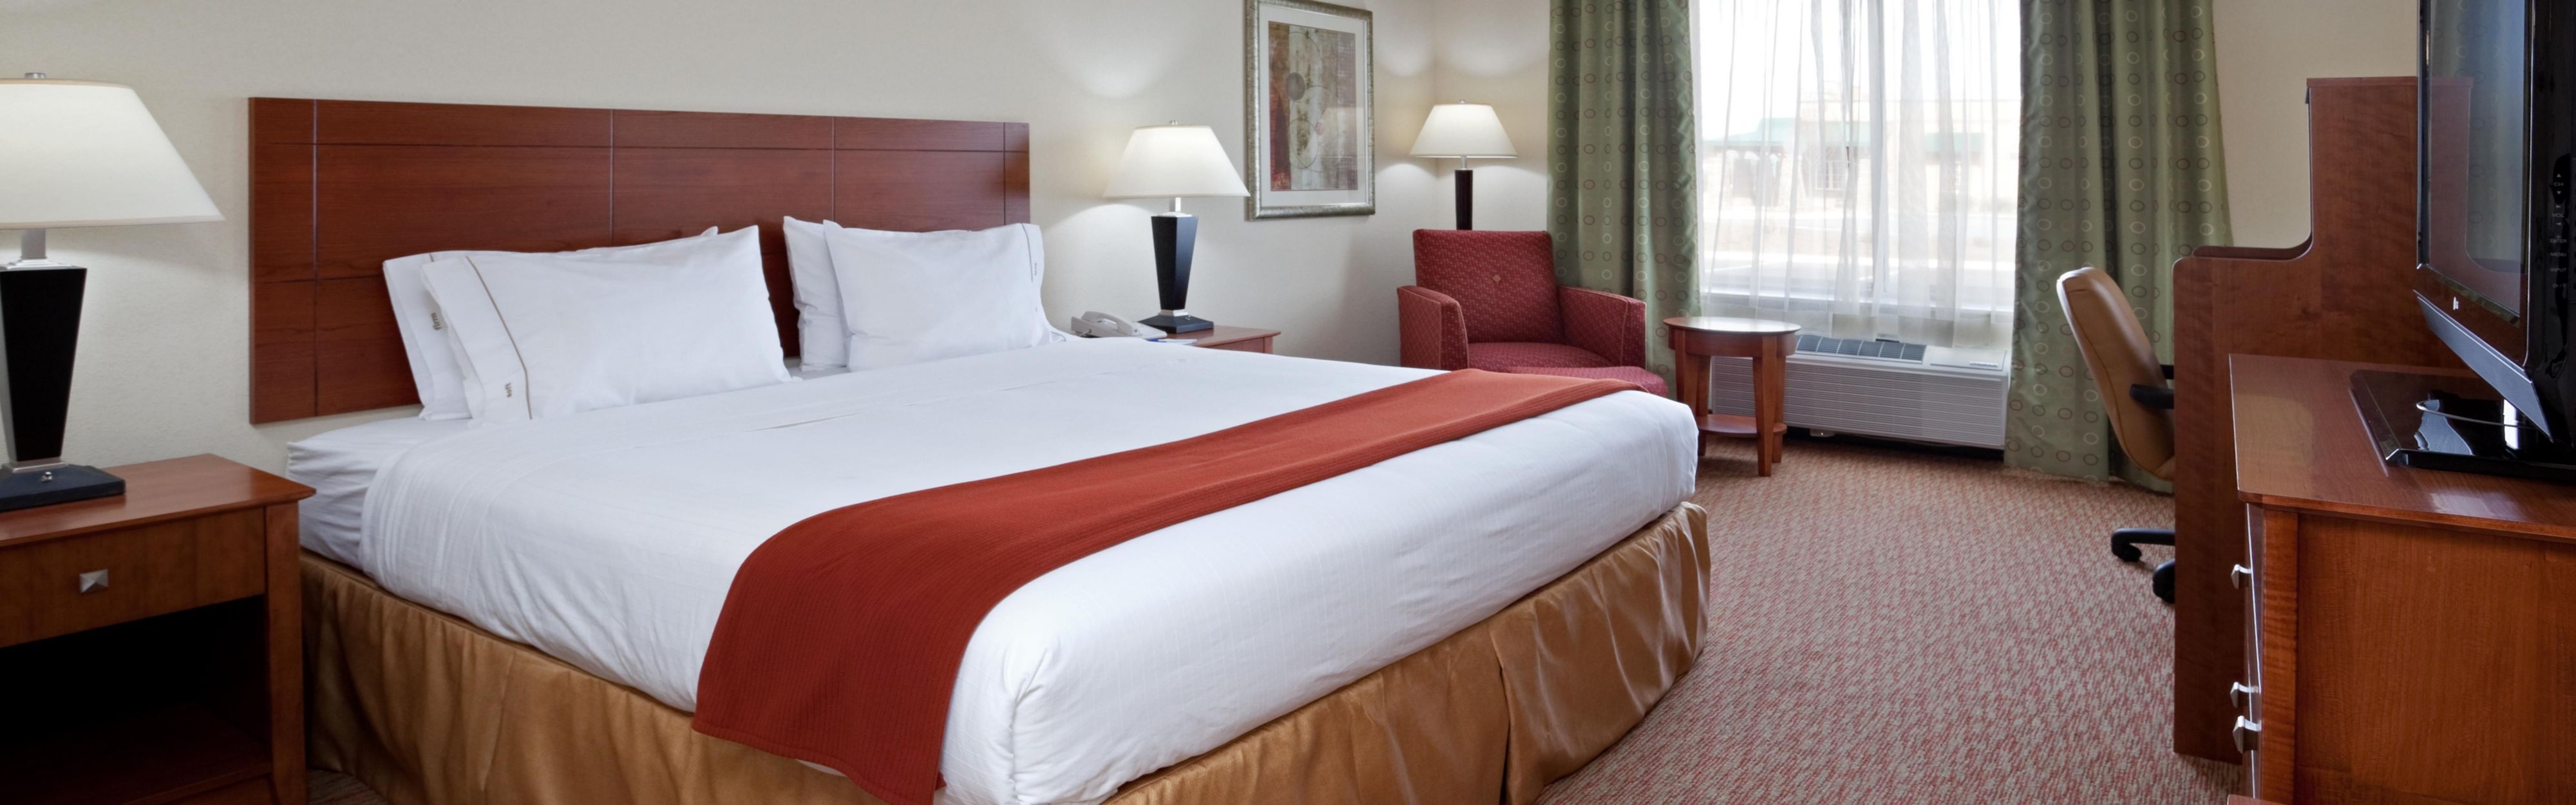 Holiday Inn Express & Suites Greensboro - Airport Area image 1